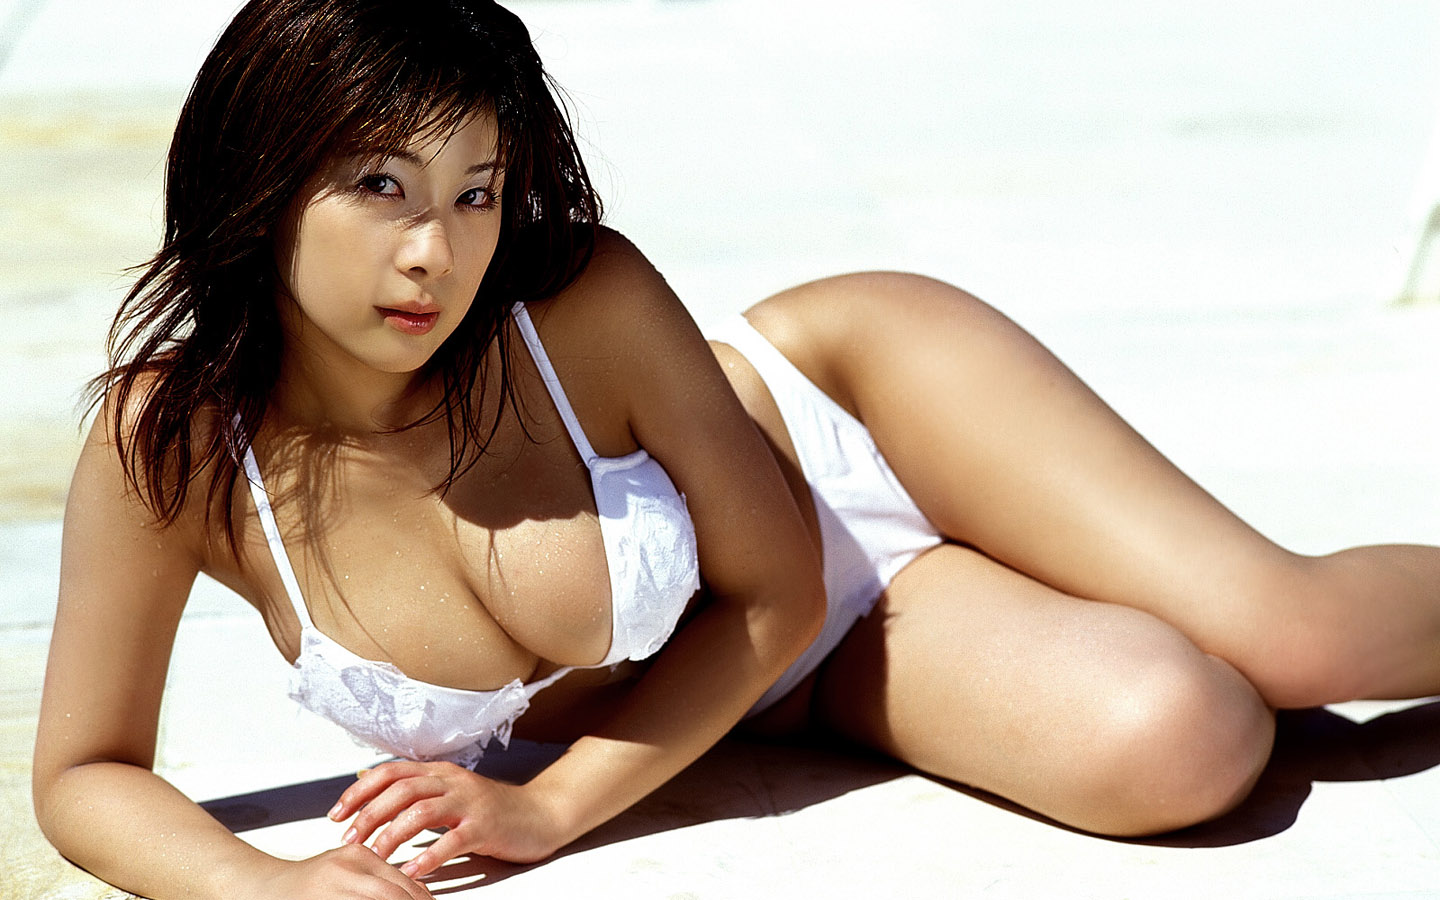 Asian Girls In Bikini Hd Wallpapers  Sexy Hollywood And -6831